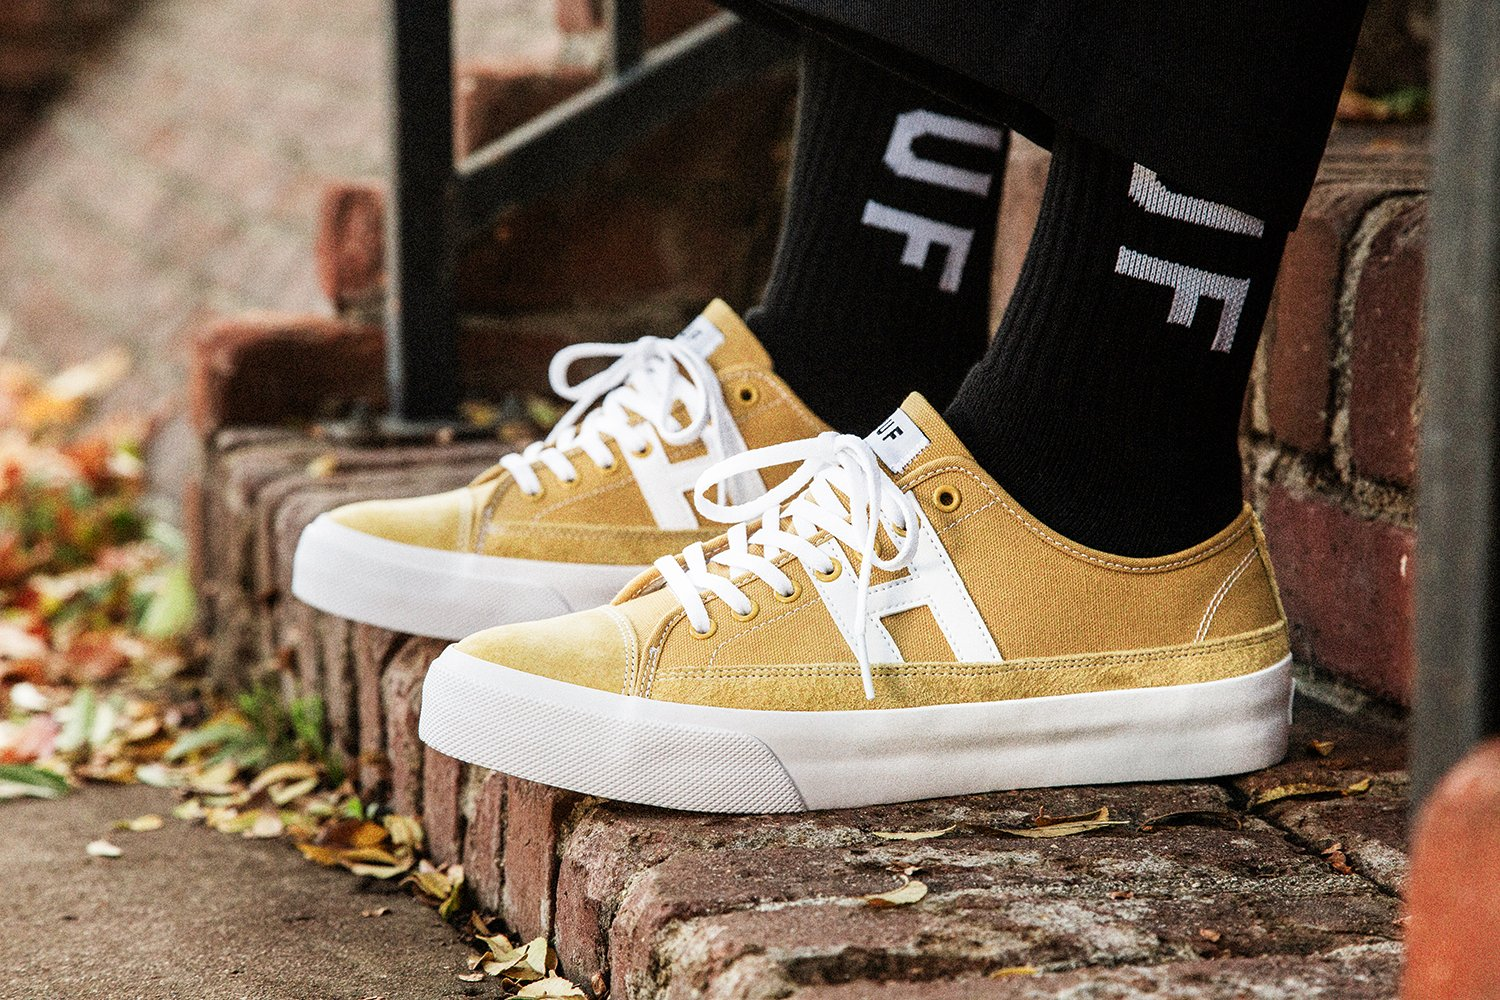 The HUF Hupper 2 Is Finally Here!